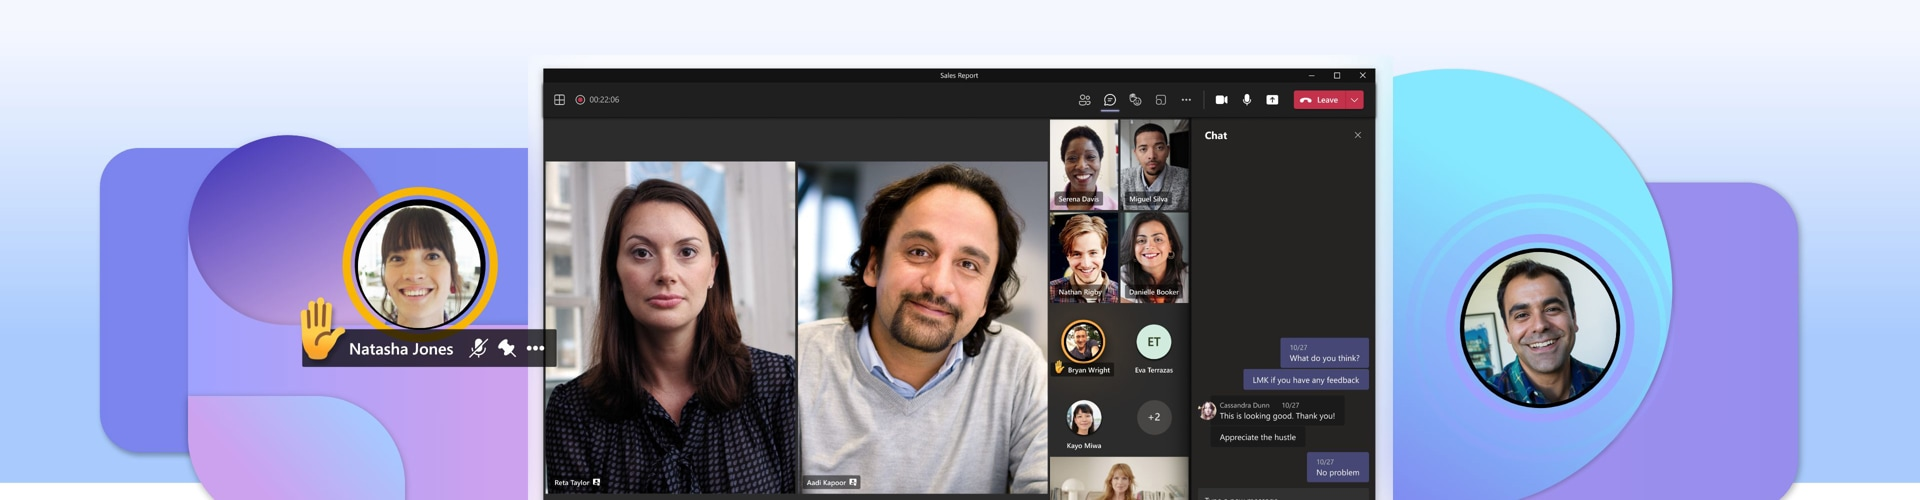 A desktop display of a Teams video call with 11 participants and the text chat open on the right.